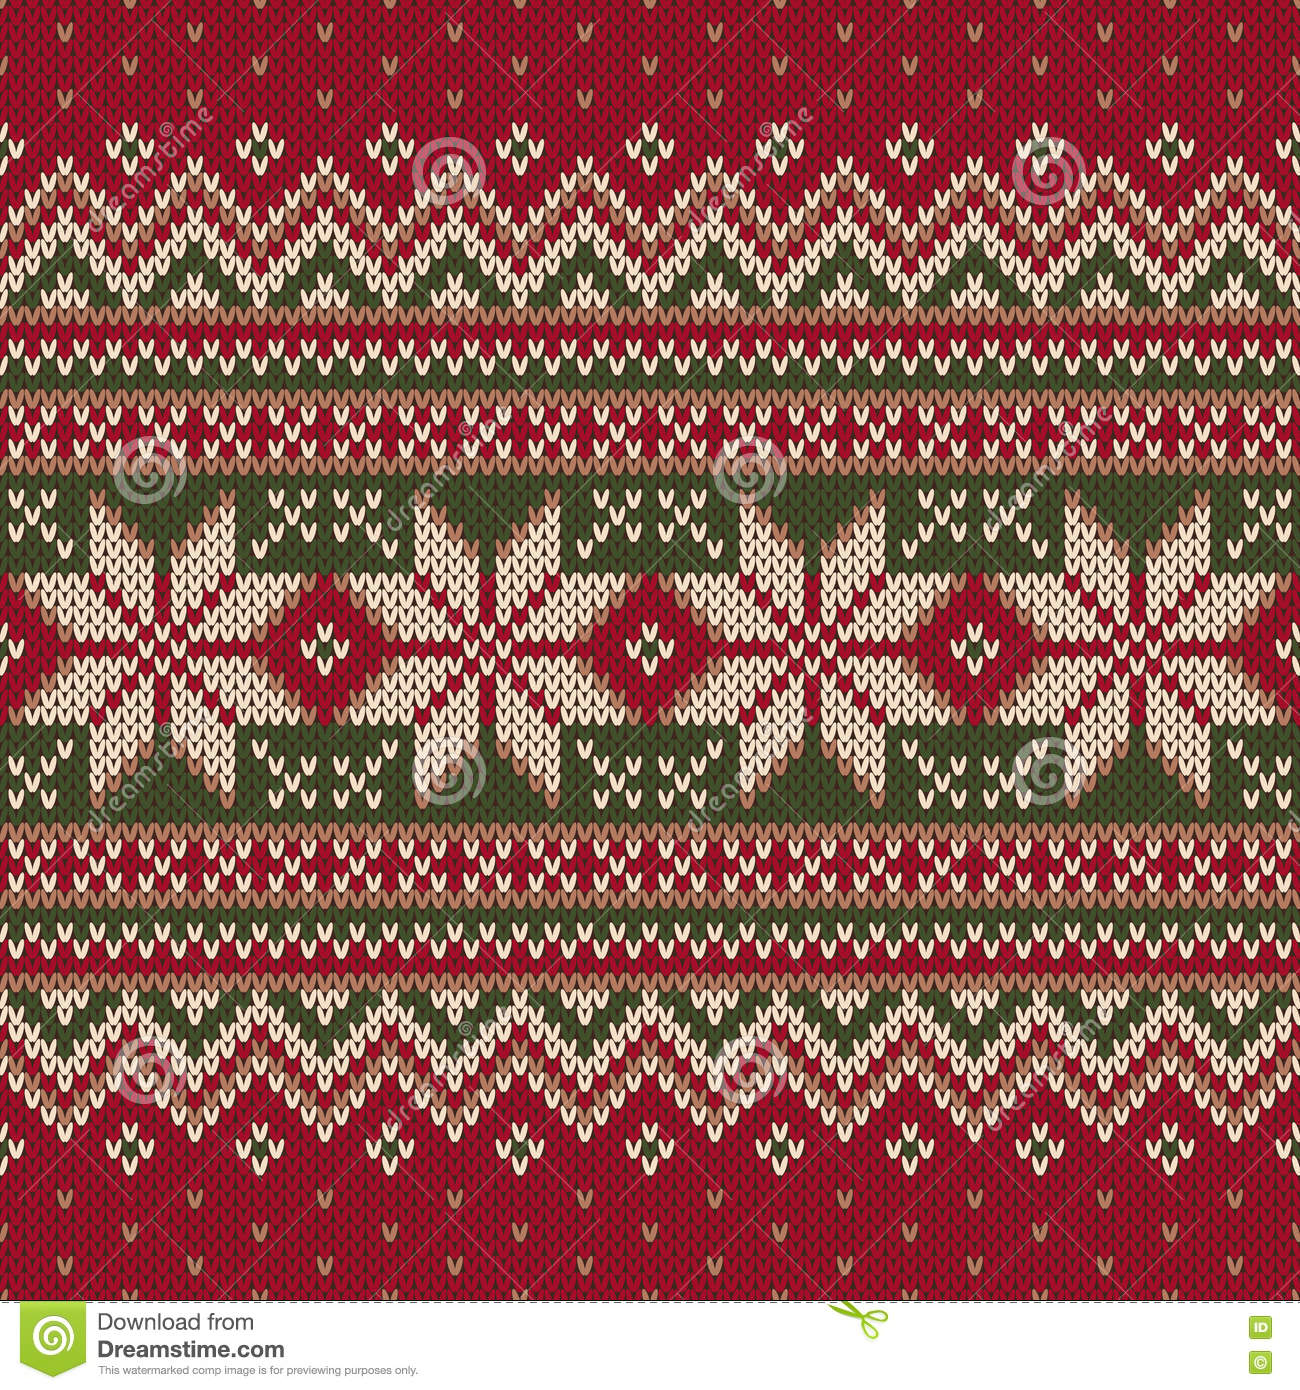 Winter Holiday Fair Isle Knitted Pattern Vector Seamless